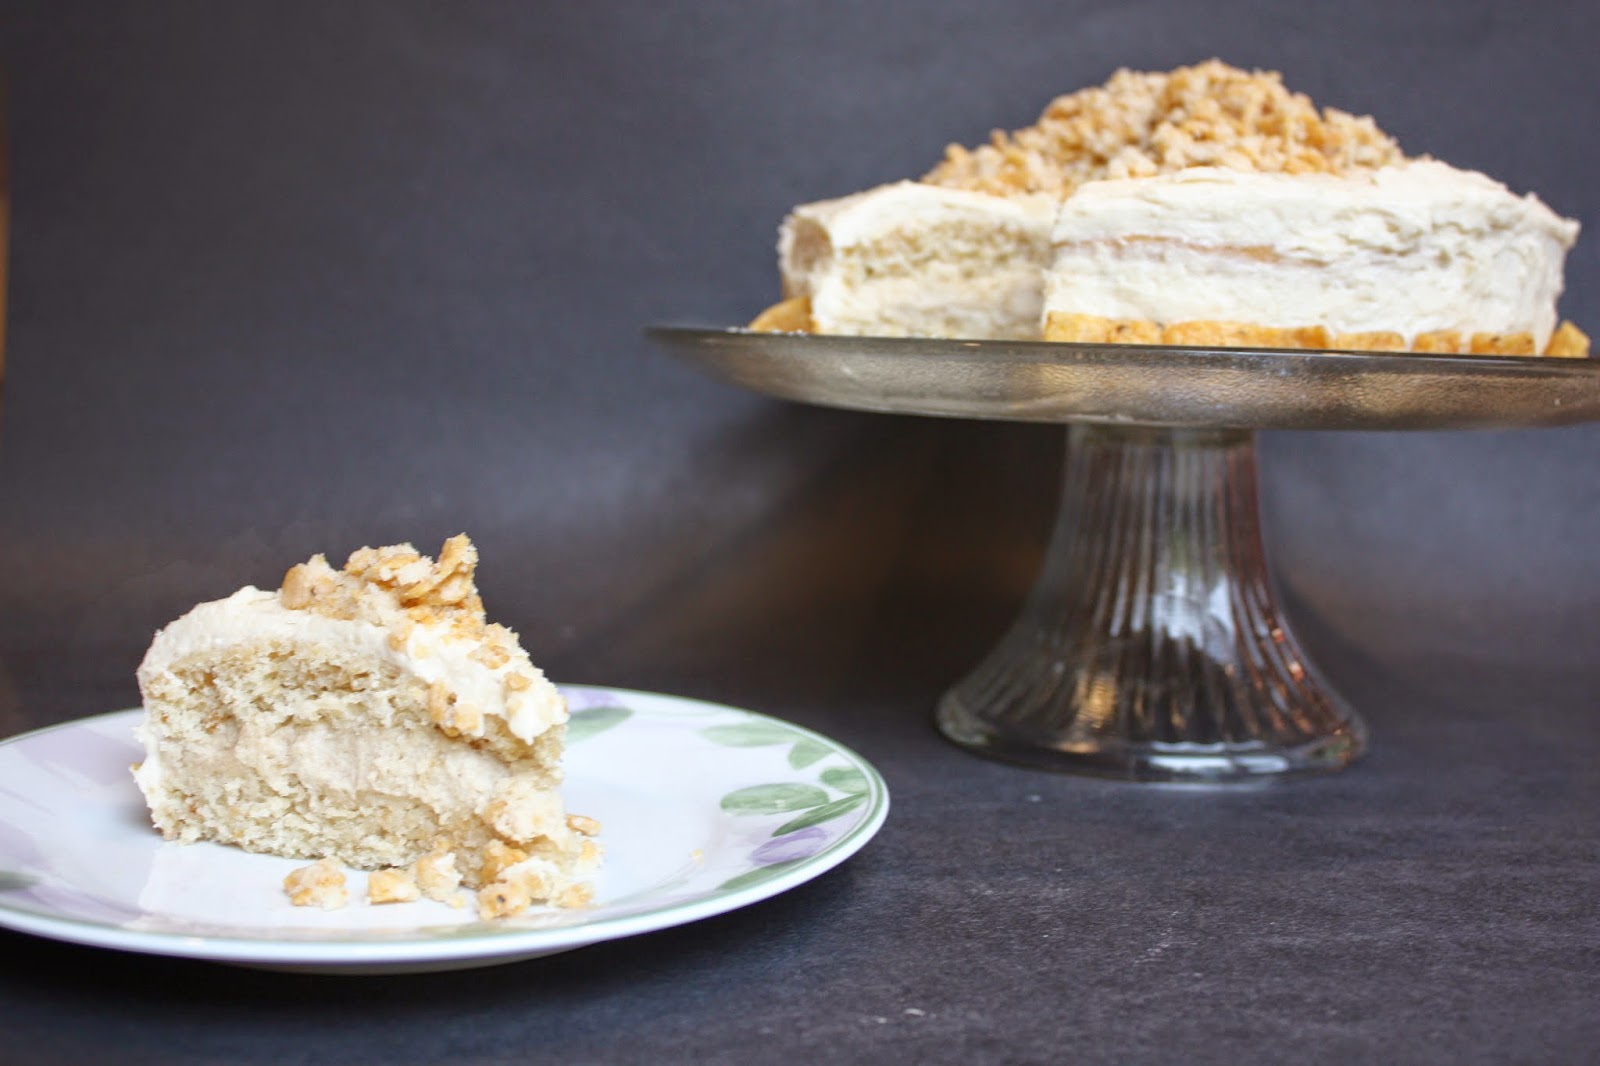 vegan frito cheesecake cake